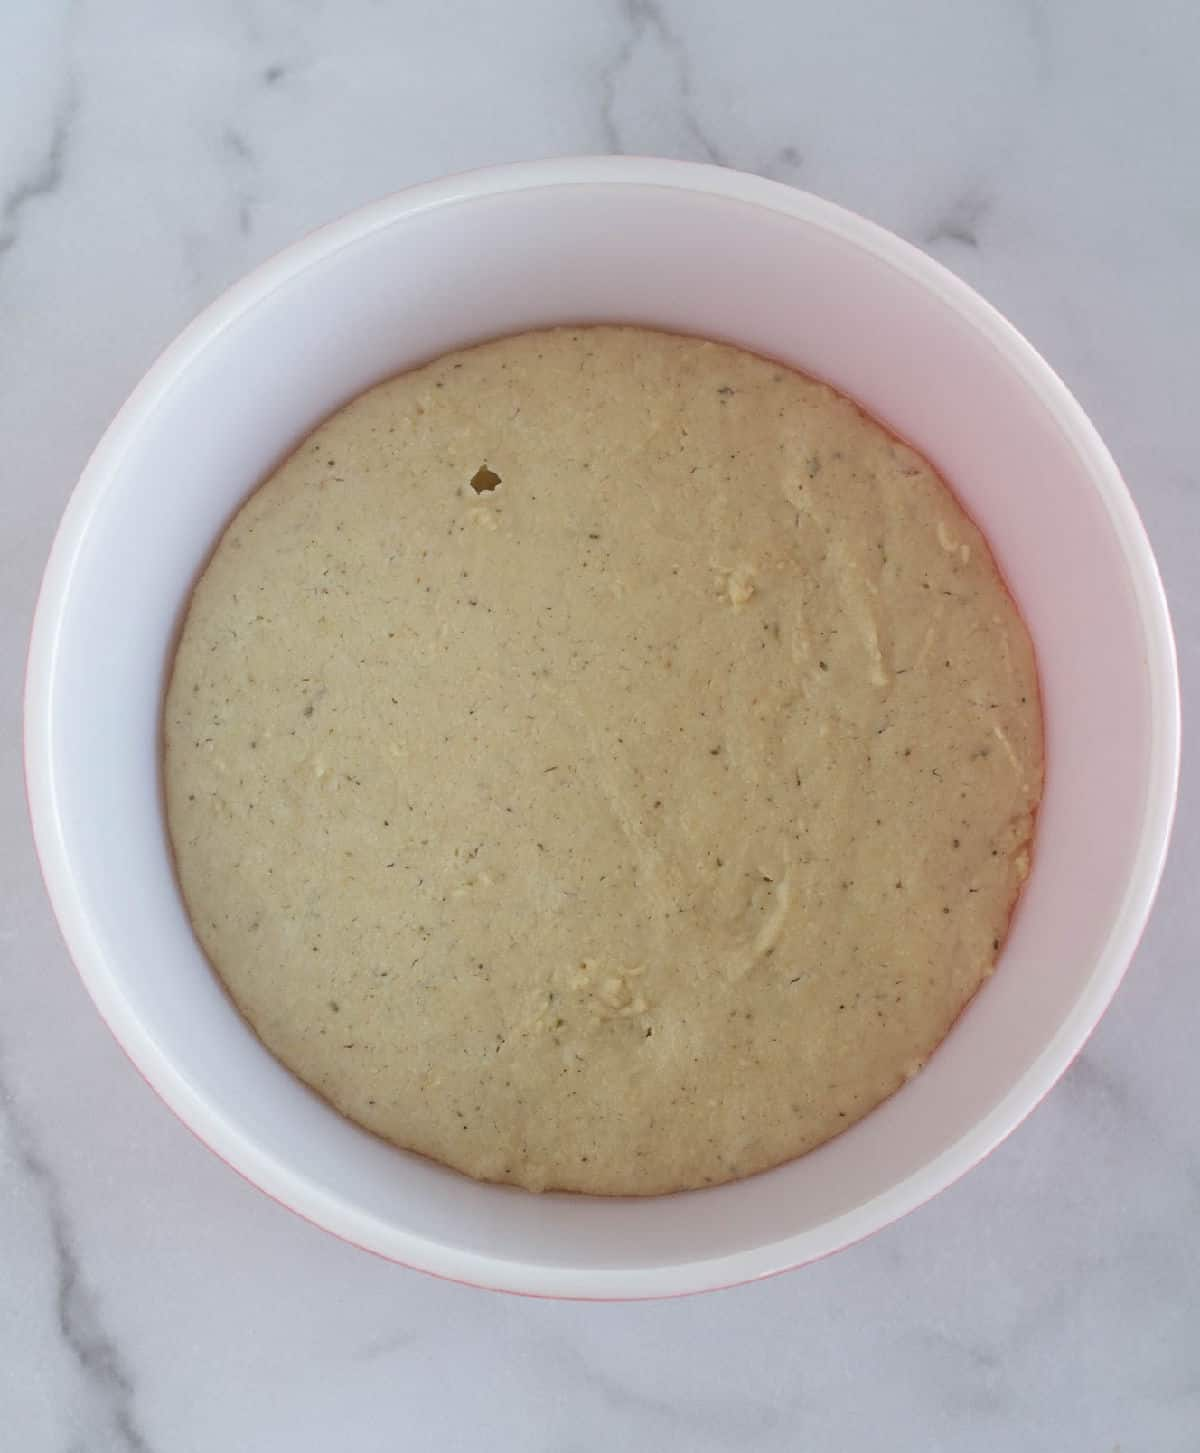 pizza dough in bowl after rising